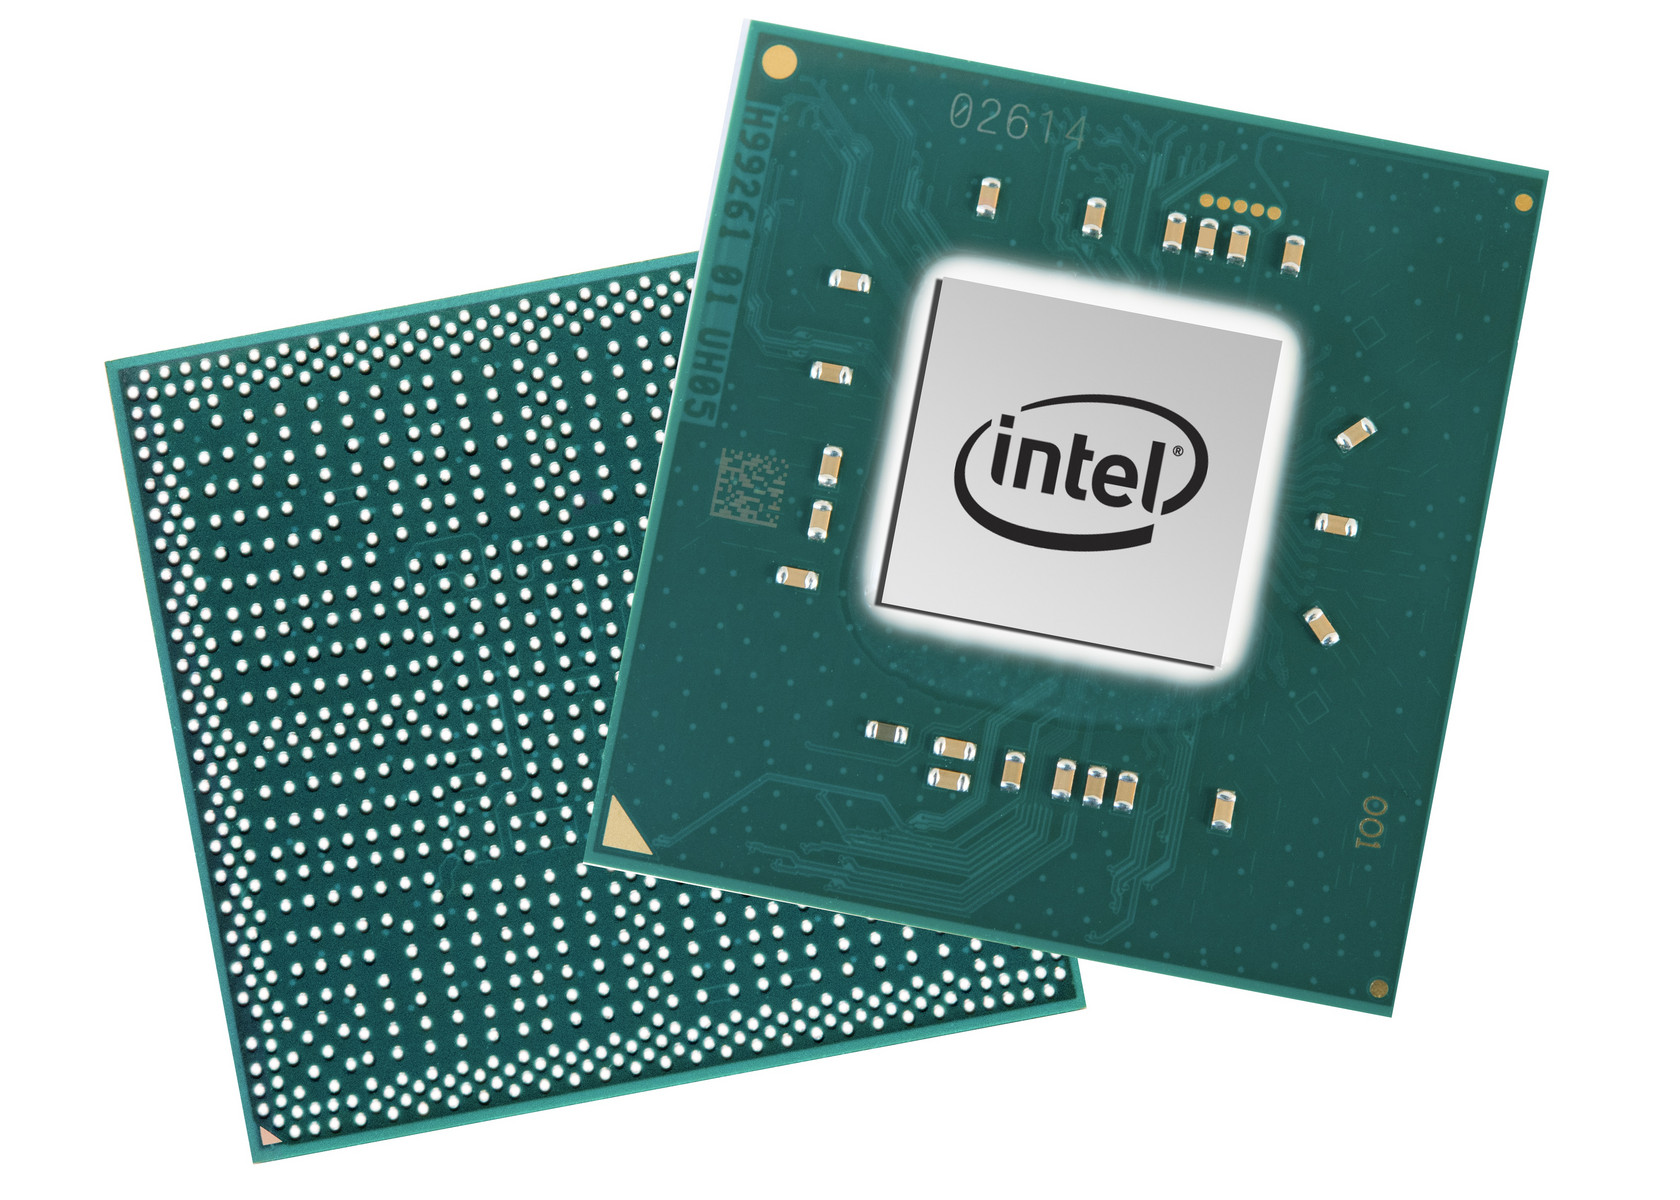 Intel UHD Graphics 600 vs Intel Iris Graphics 540 vs Intel ...